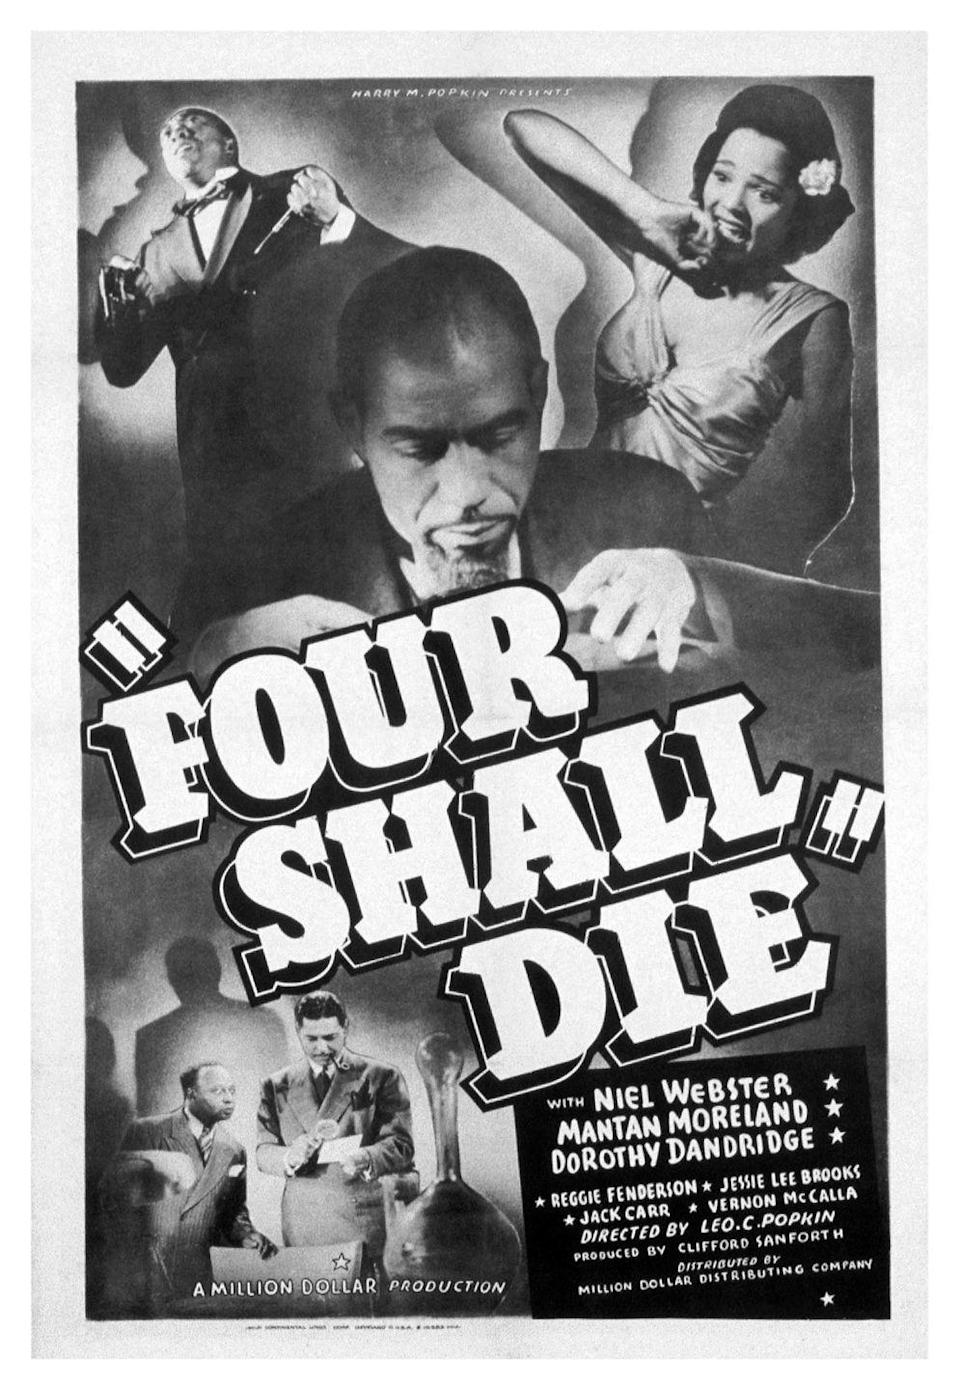 <p>In 1940, Dandridge appeared in her first solo film role. The singer and actress landed the part of Helen Fielding in <em>Four Shall Die</em>.</p>